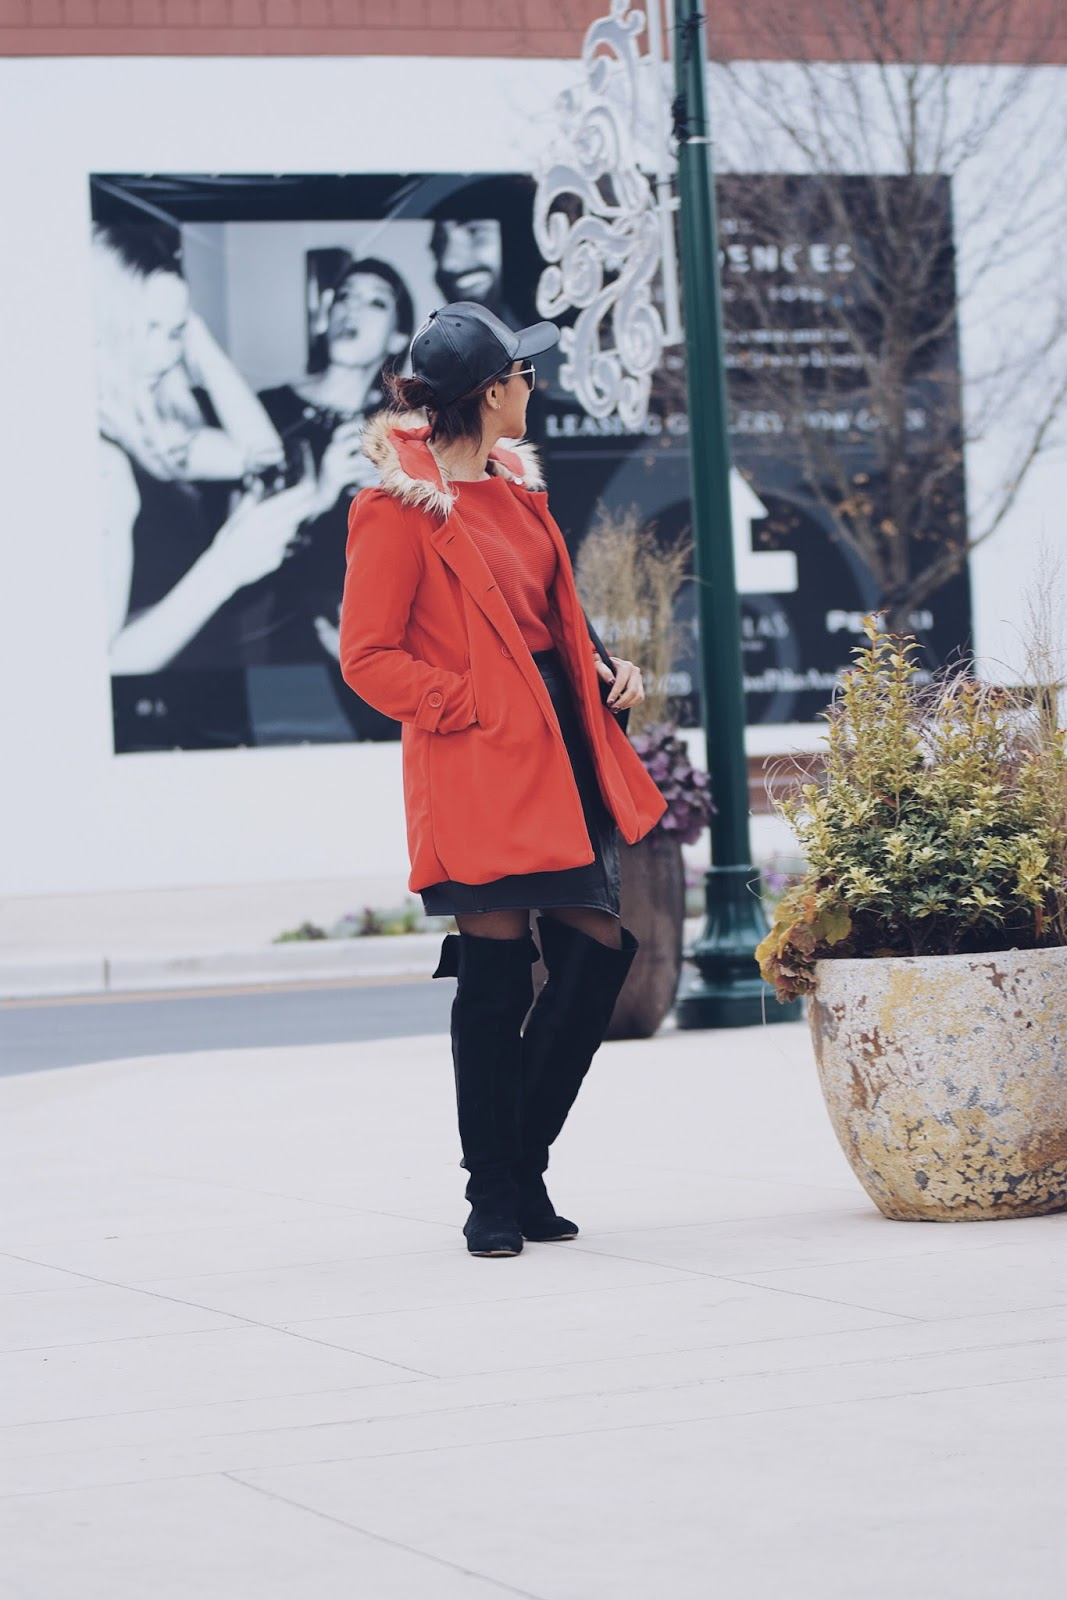 Styling a red coat by mariestilo- Wearing:  Red Coat: LightInTheBox  Mini Skirt: Choies